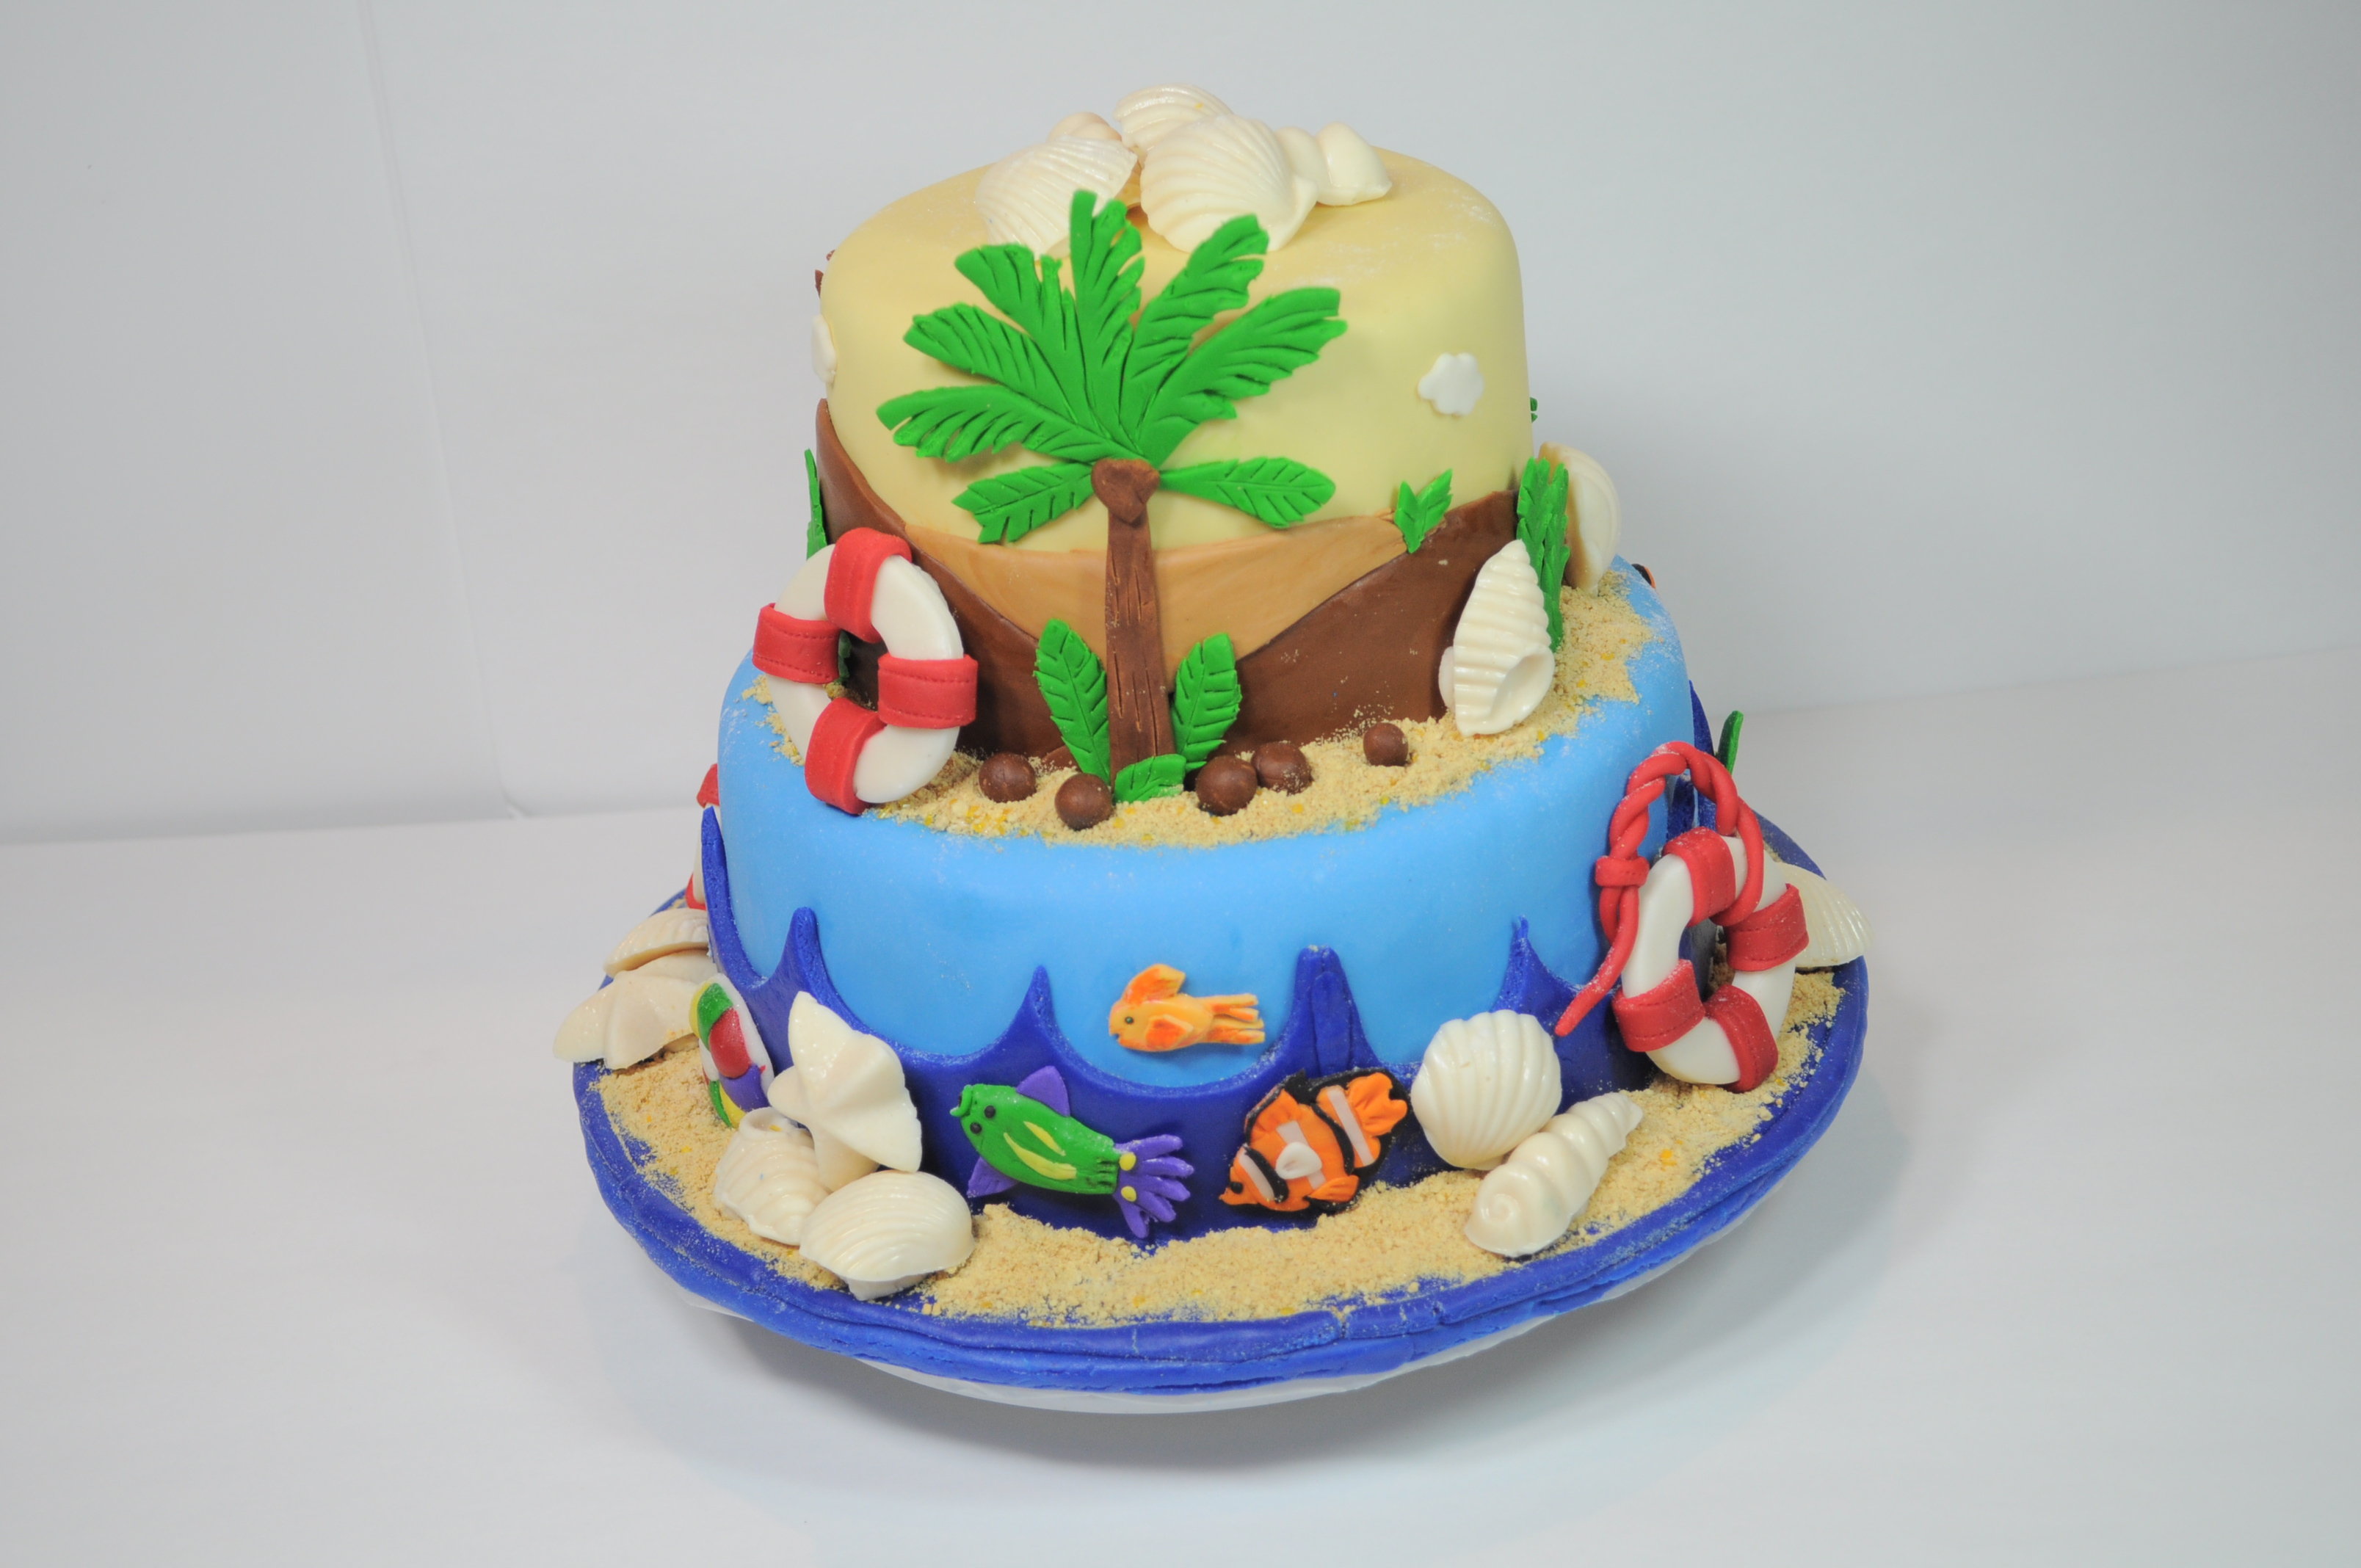 Cake Images For Birthdays : Google Image Result for http://www.mcssl.com/content ...